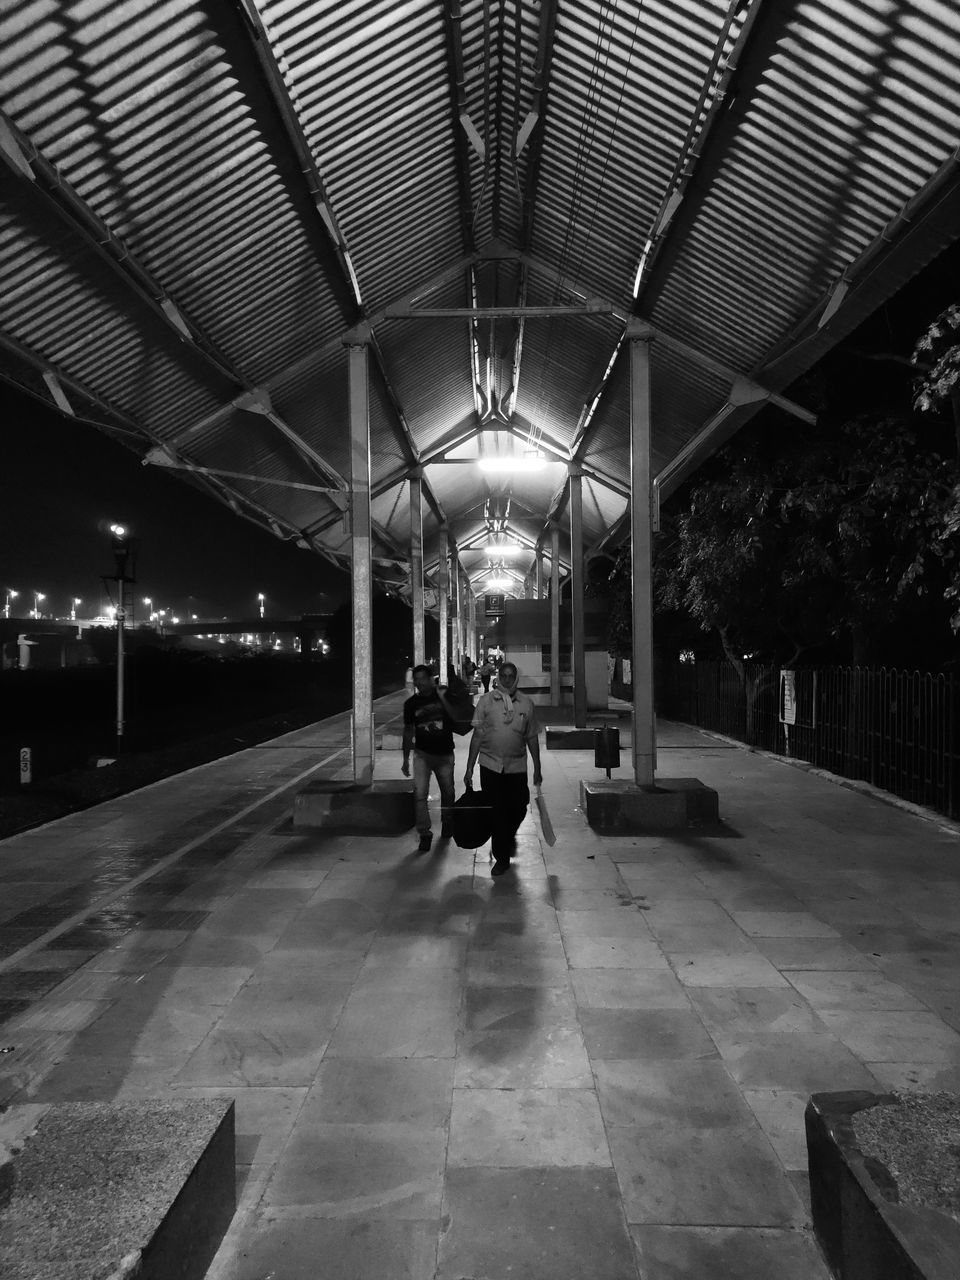 REAR VIEW OF MAN AND WOMAN WALKING IN ILLUMINATED UNDERGROUND